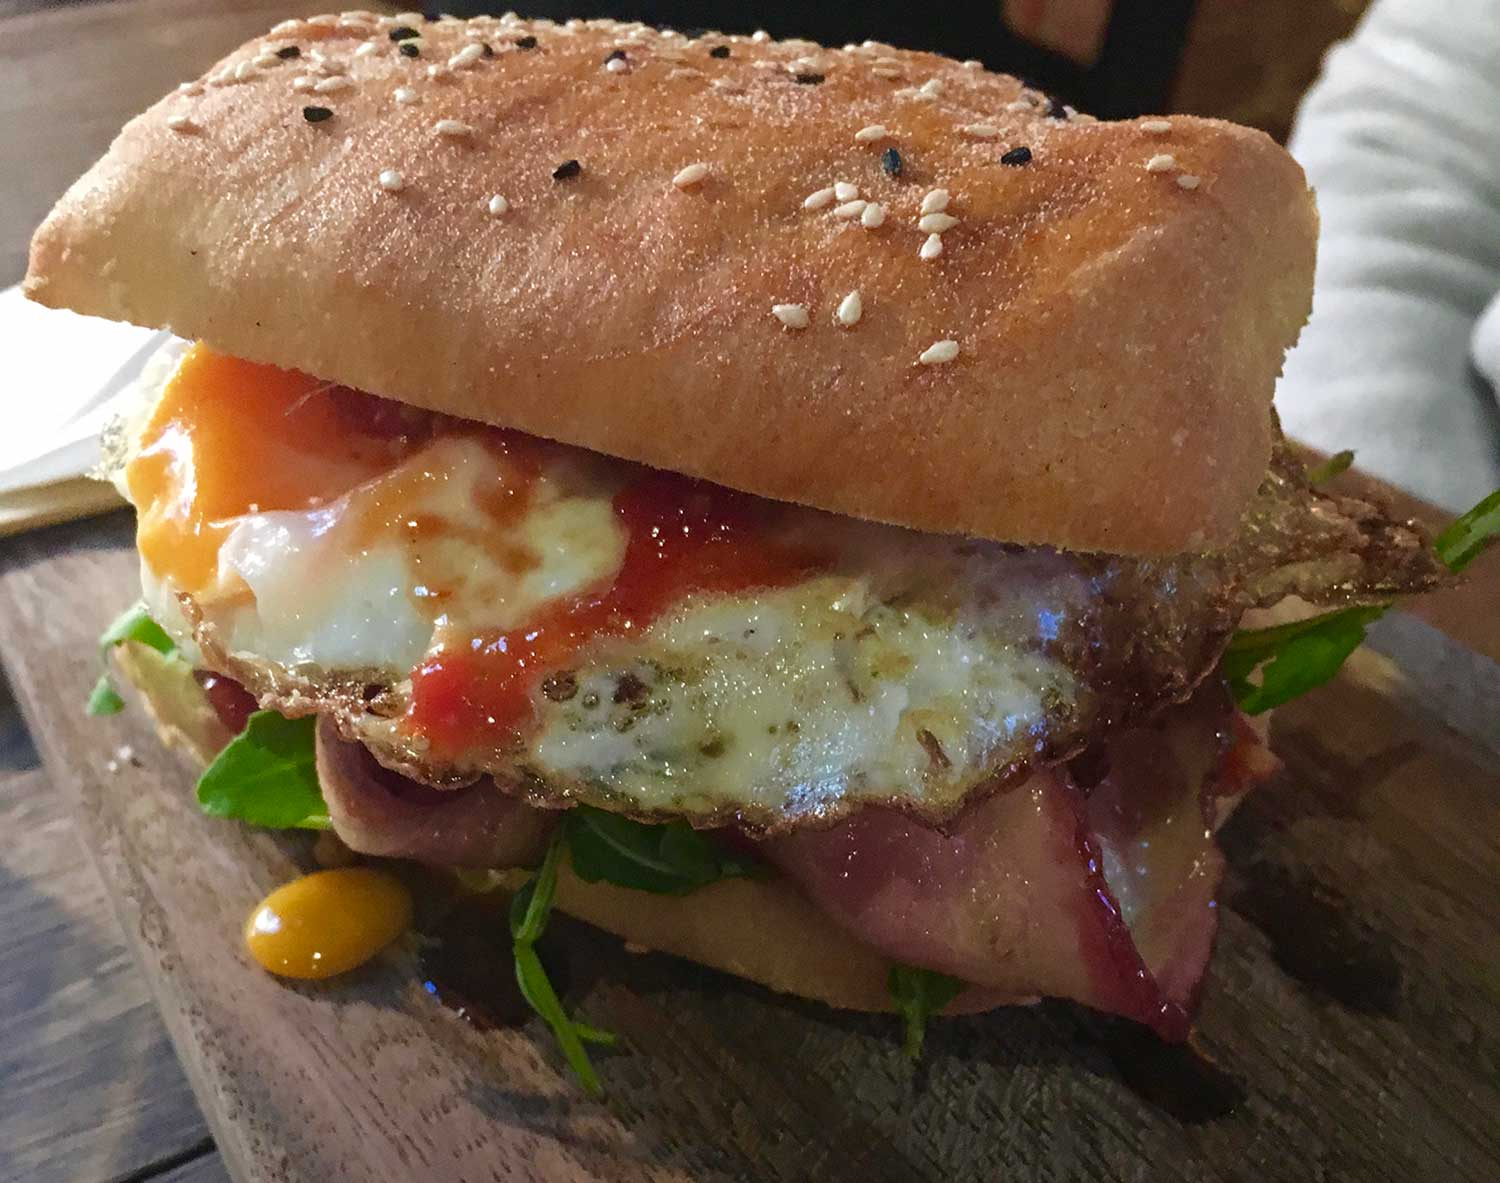 The Bacon and Egg roll from Australia is one of the most iconic, best sandwiches in the world.